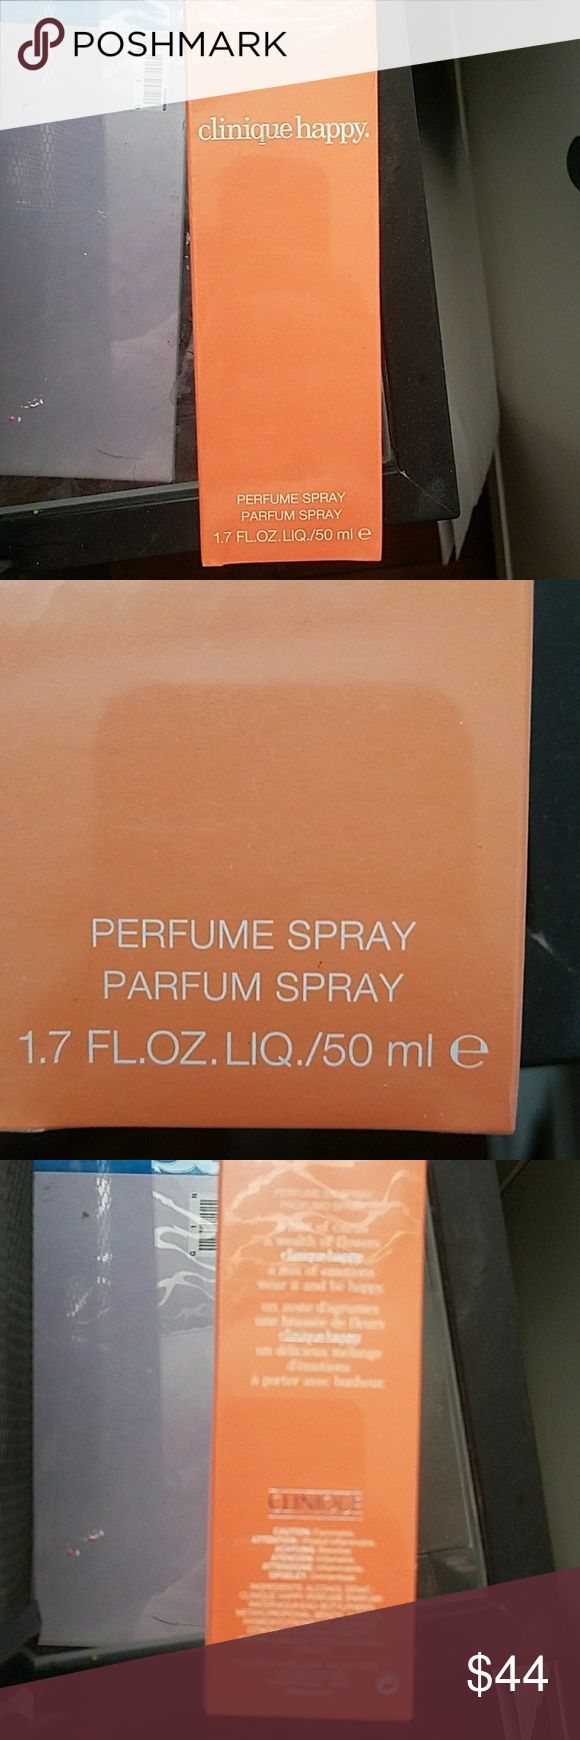 Clinique Happy Perfume Spray Brand new!  Never opened! Clinique Other